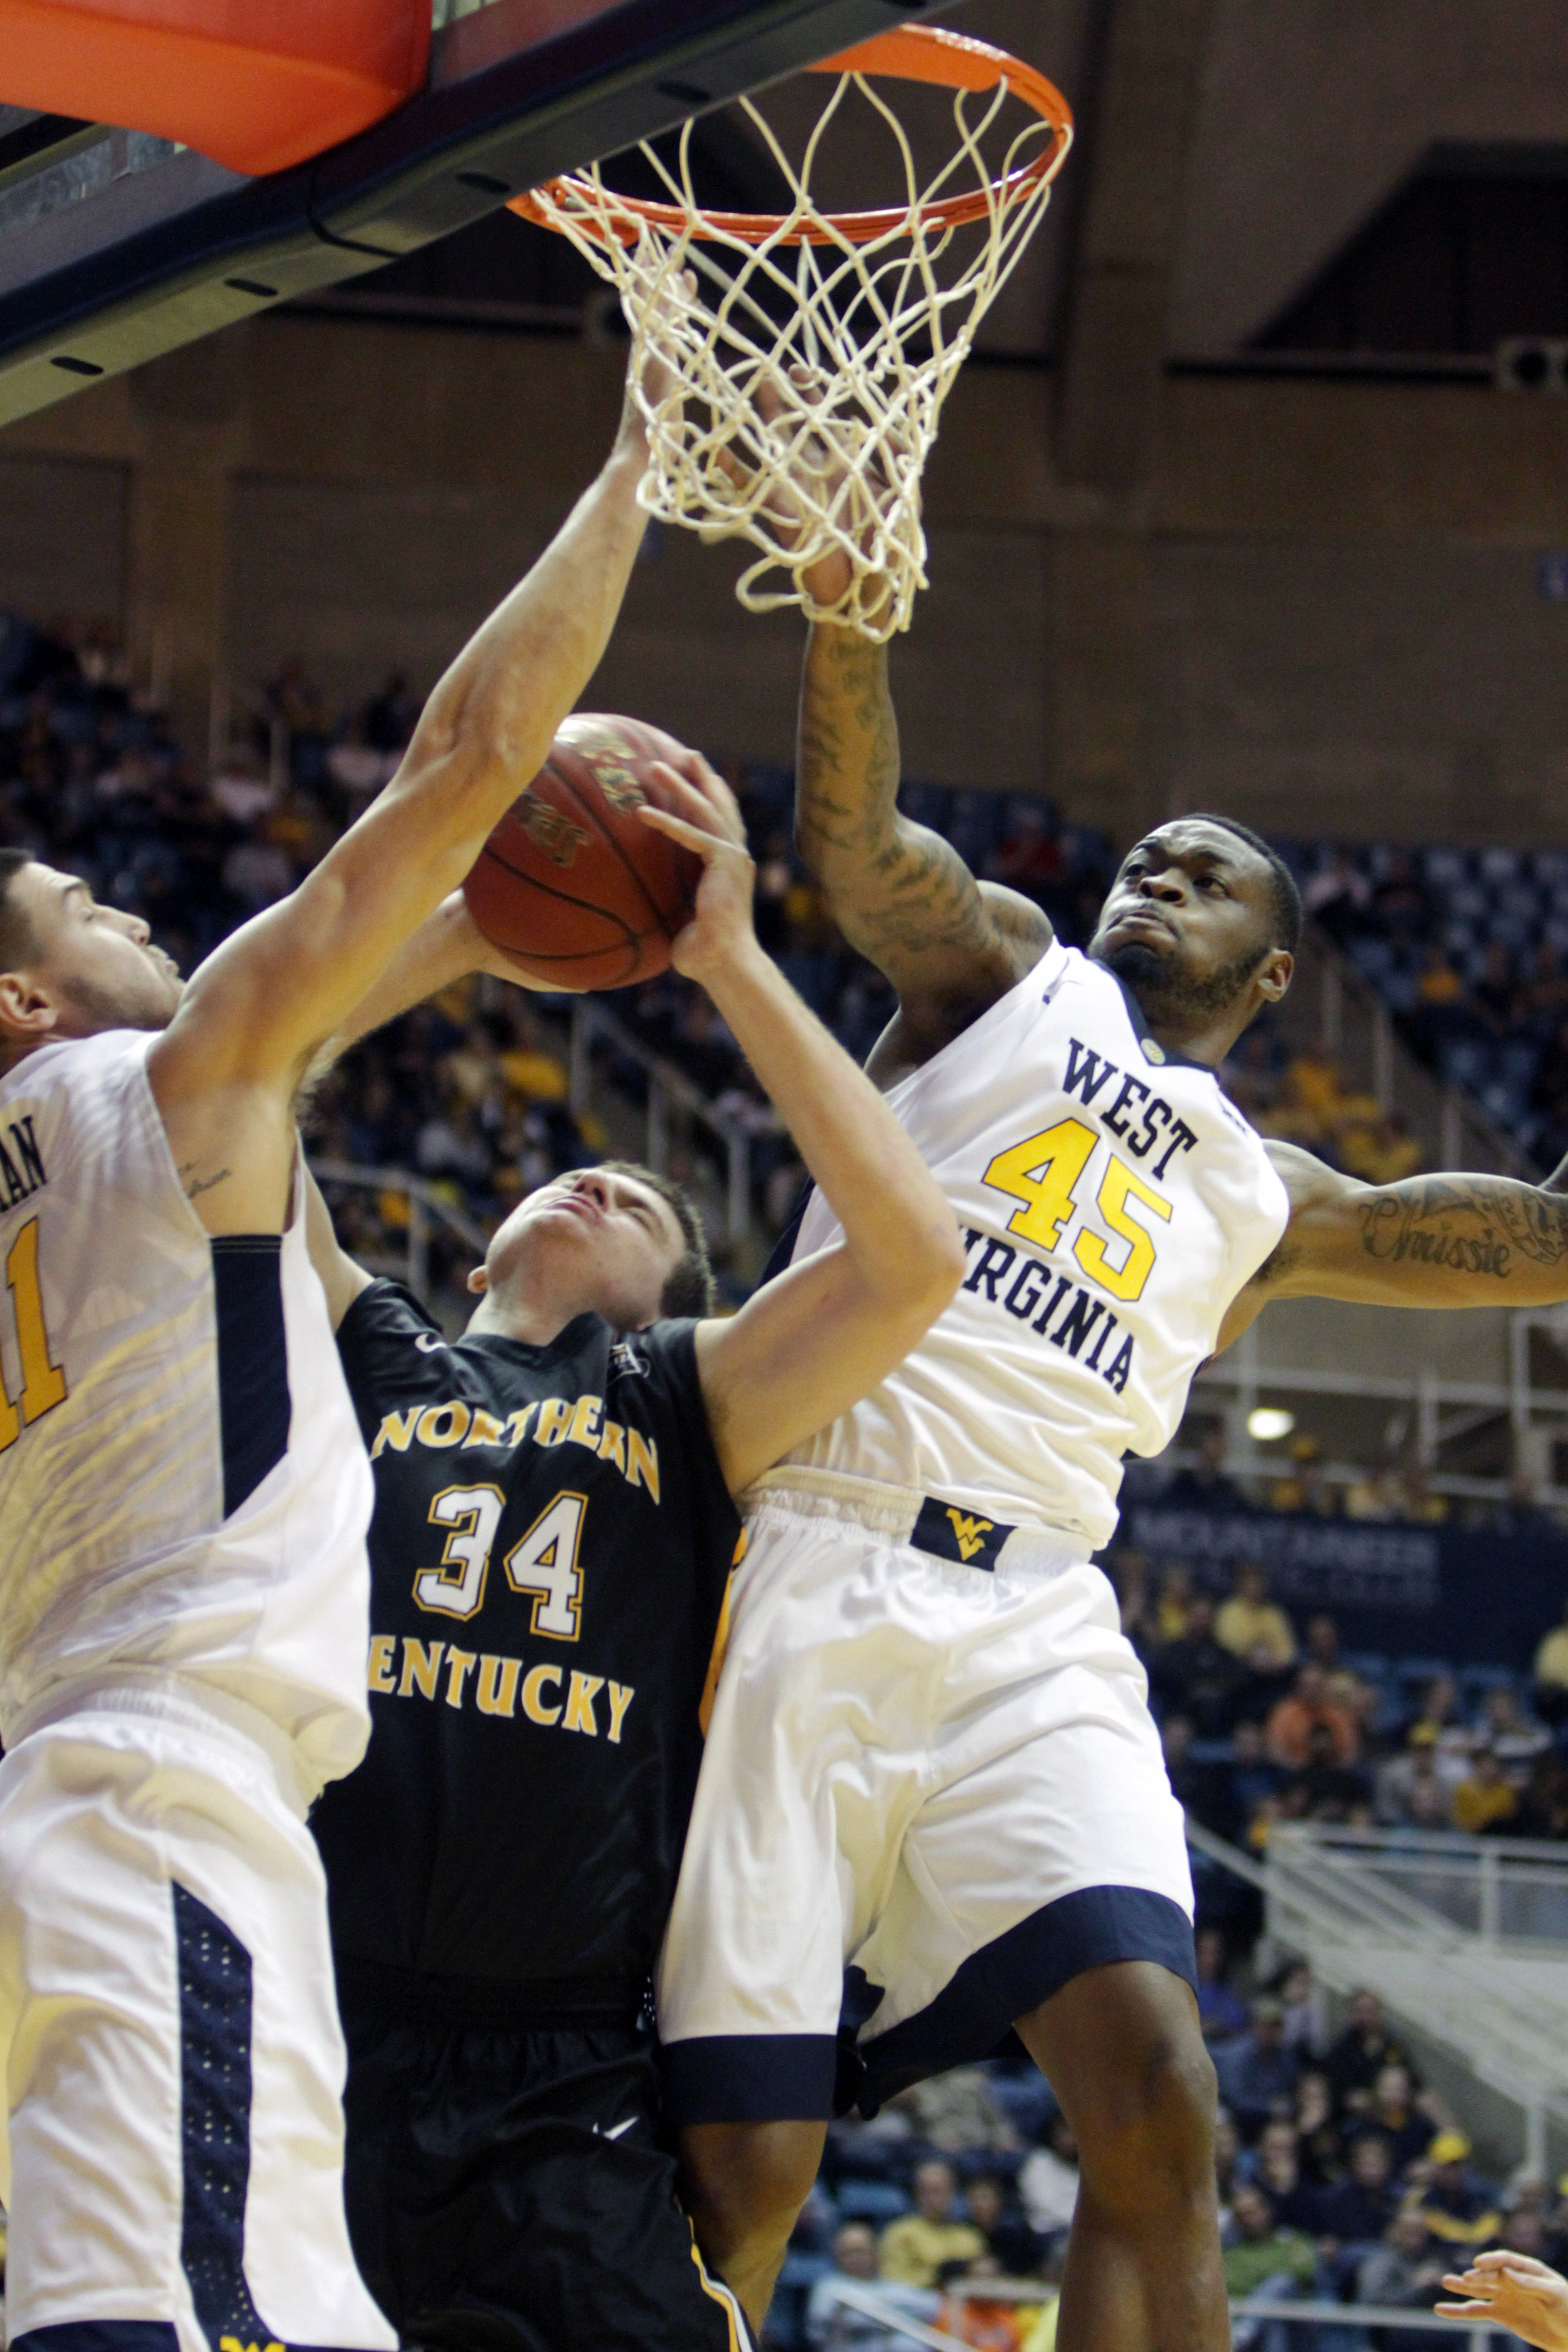 West Virginia forward Elijah Macon (45) blocks Northern Kentucky center Drew McDonald (34) shot during the first half of an NCAA college basketball game, Friday, Nov, 13, 2015, in Morgantown, W.Va. (AP Photo/Raymond Thompson)